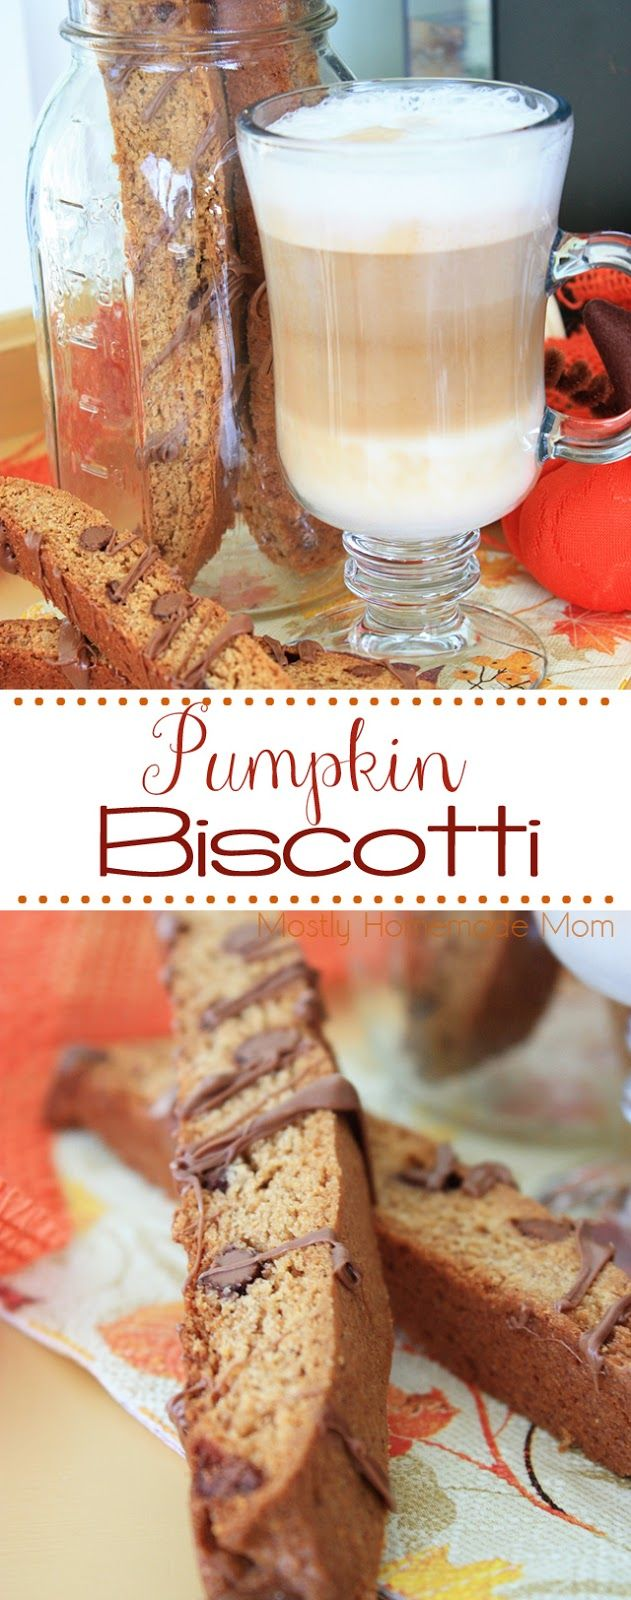 Pumpkin Biscotti - perfect with your morning coffee! Super easy to mix up and bake - be ready to make a batch to give away! #DeLonghi #artofespresso #ad